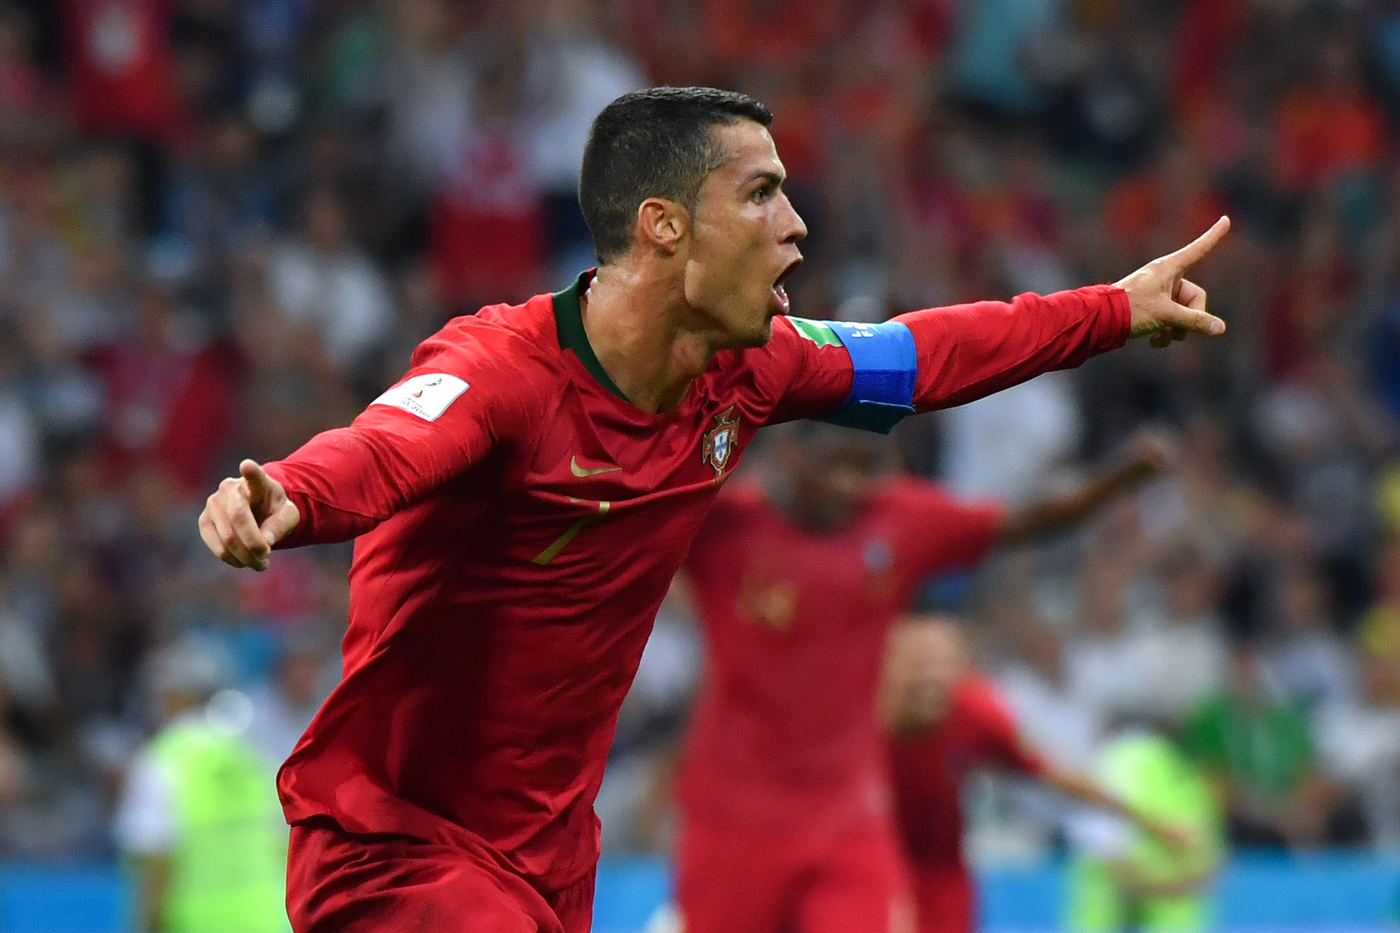 UEFA Nations League, Portogallo-Svizzera 5 giugno: CR7 torna in nazionale per la sfida dell'Estádio do Dragão